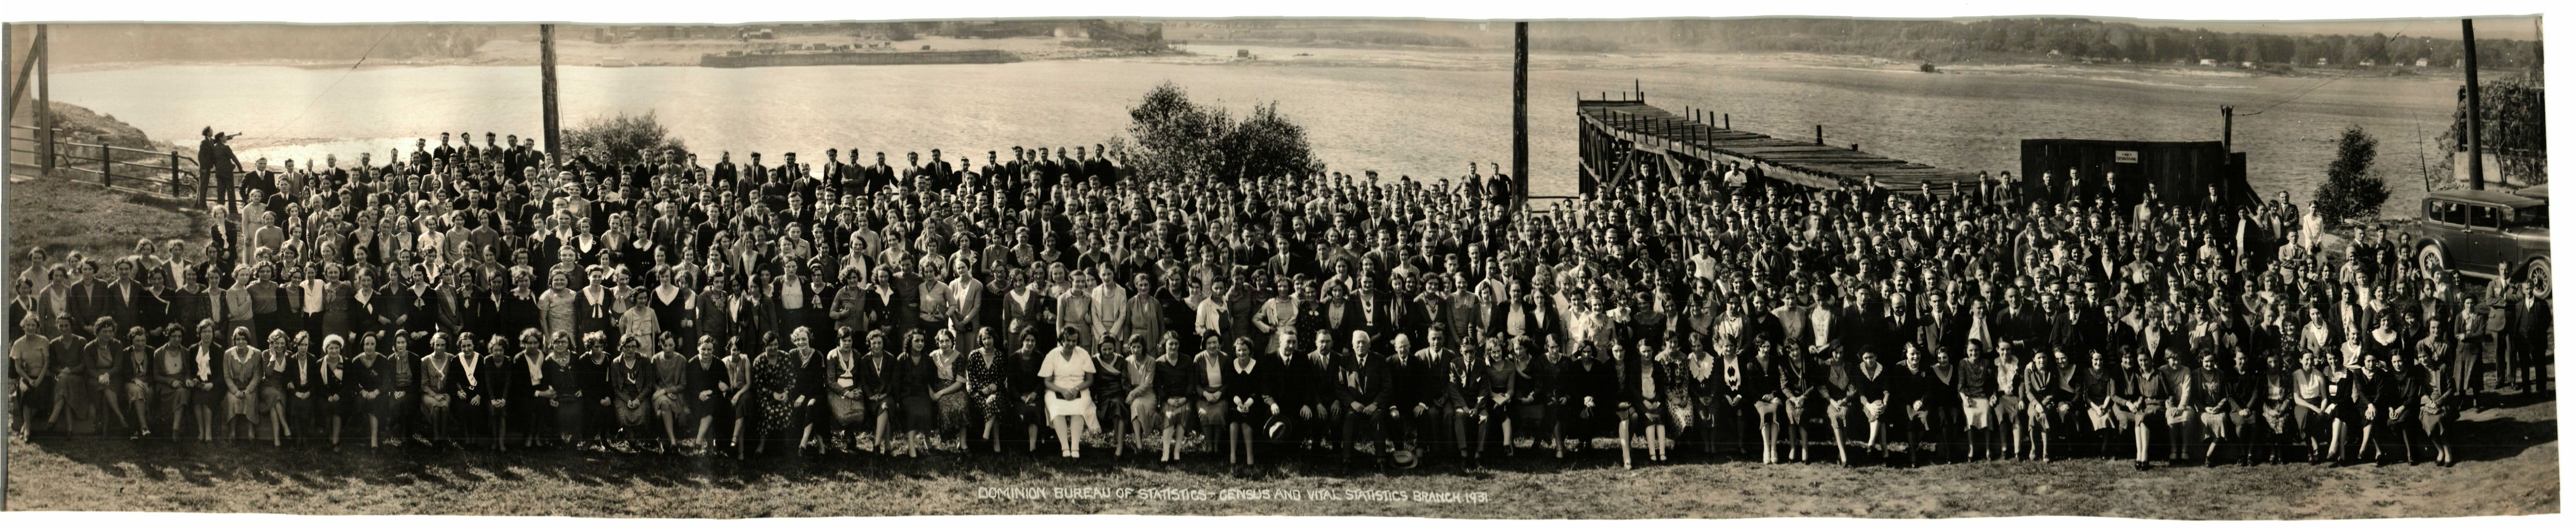 1931 Employees of the census and vital statistics branch